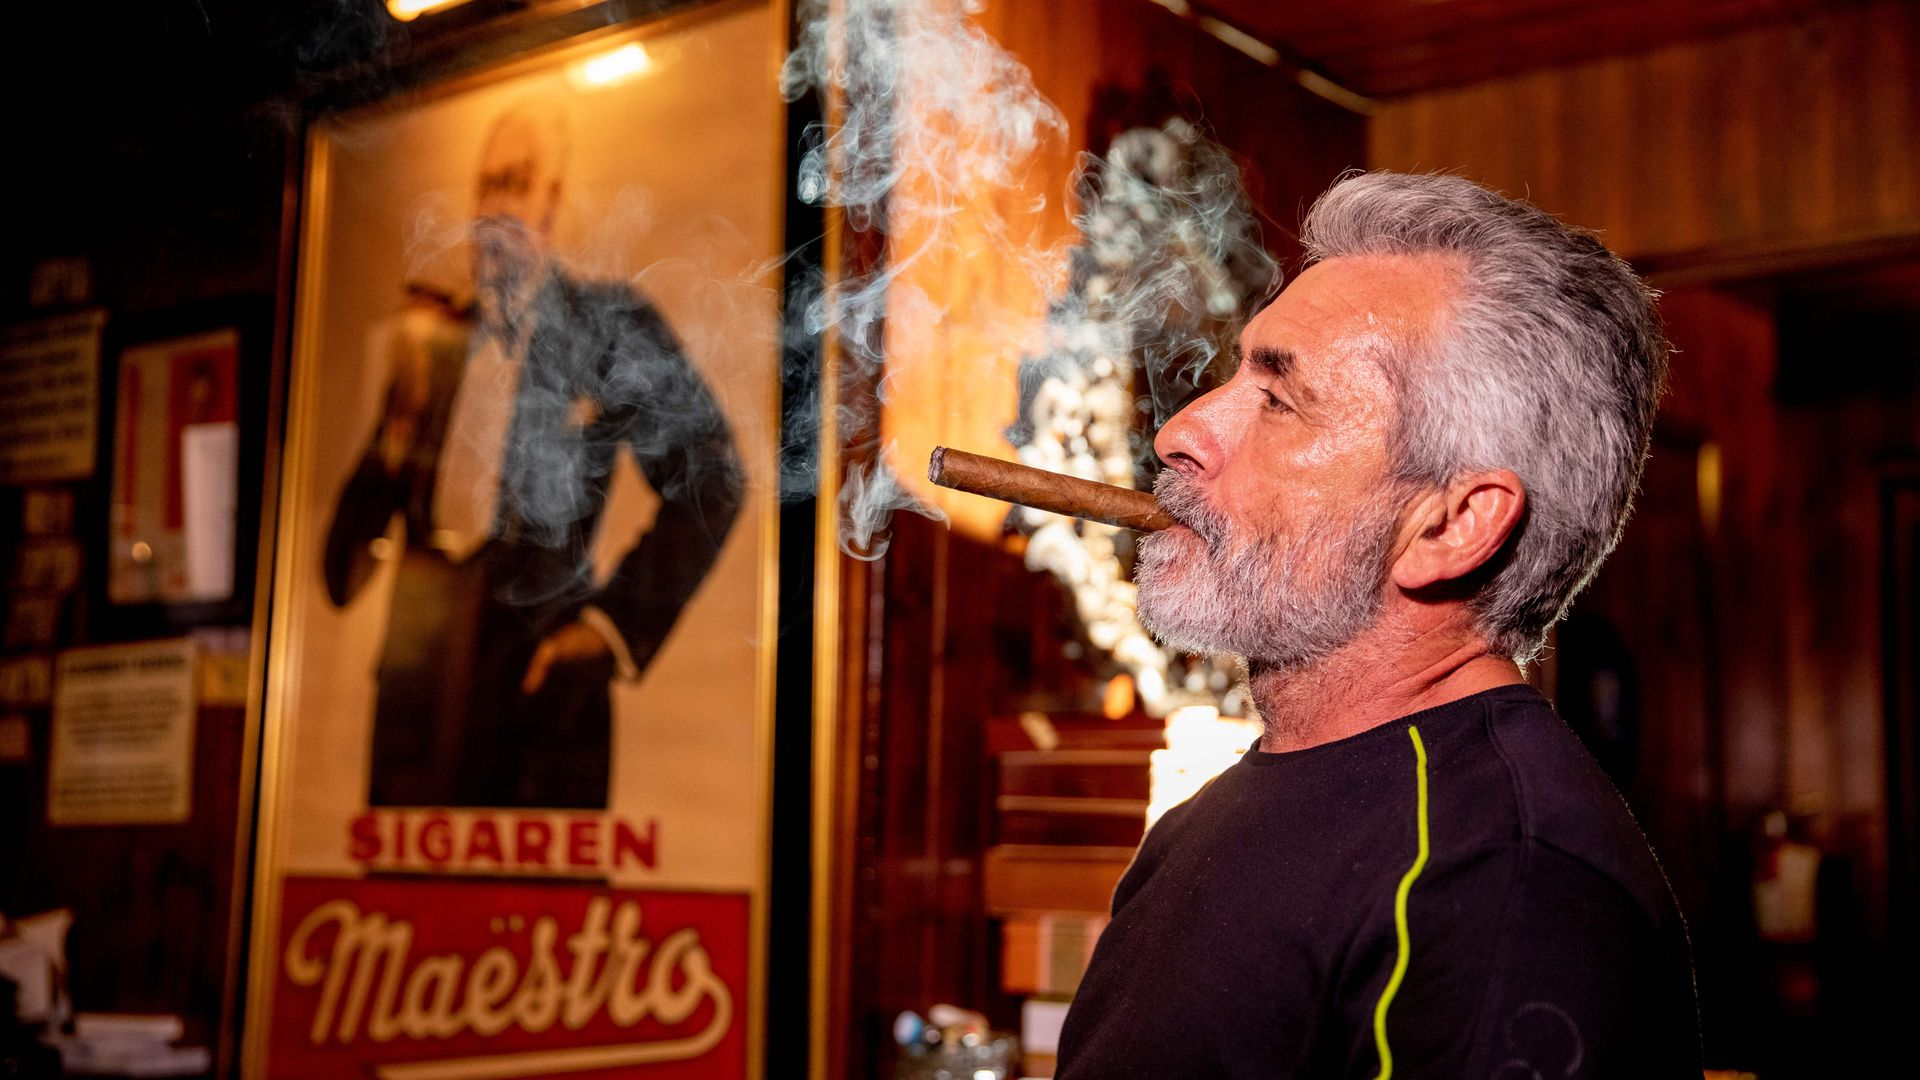 Rigo Fernandez, owner of Buena Vista Cigar Club, smokes a cigar in his lounge in Beverly Hills, California, May 21, 2019.